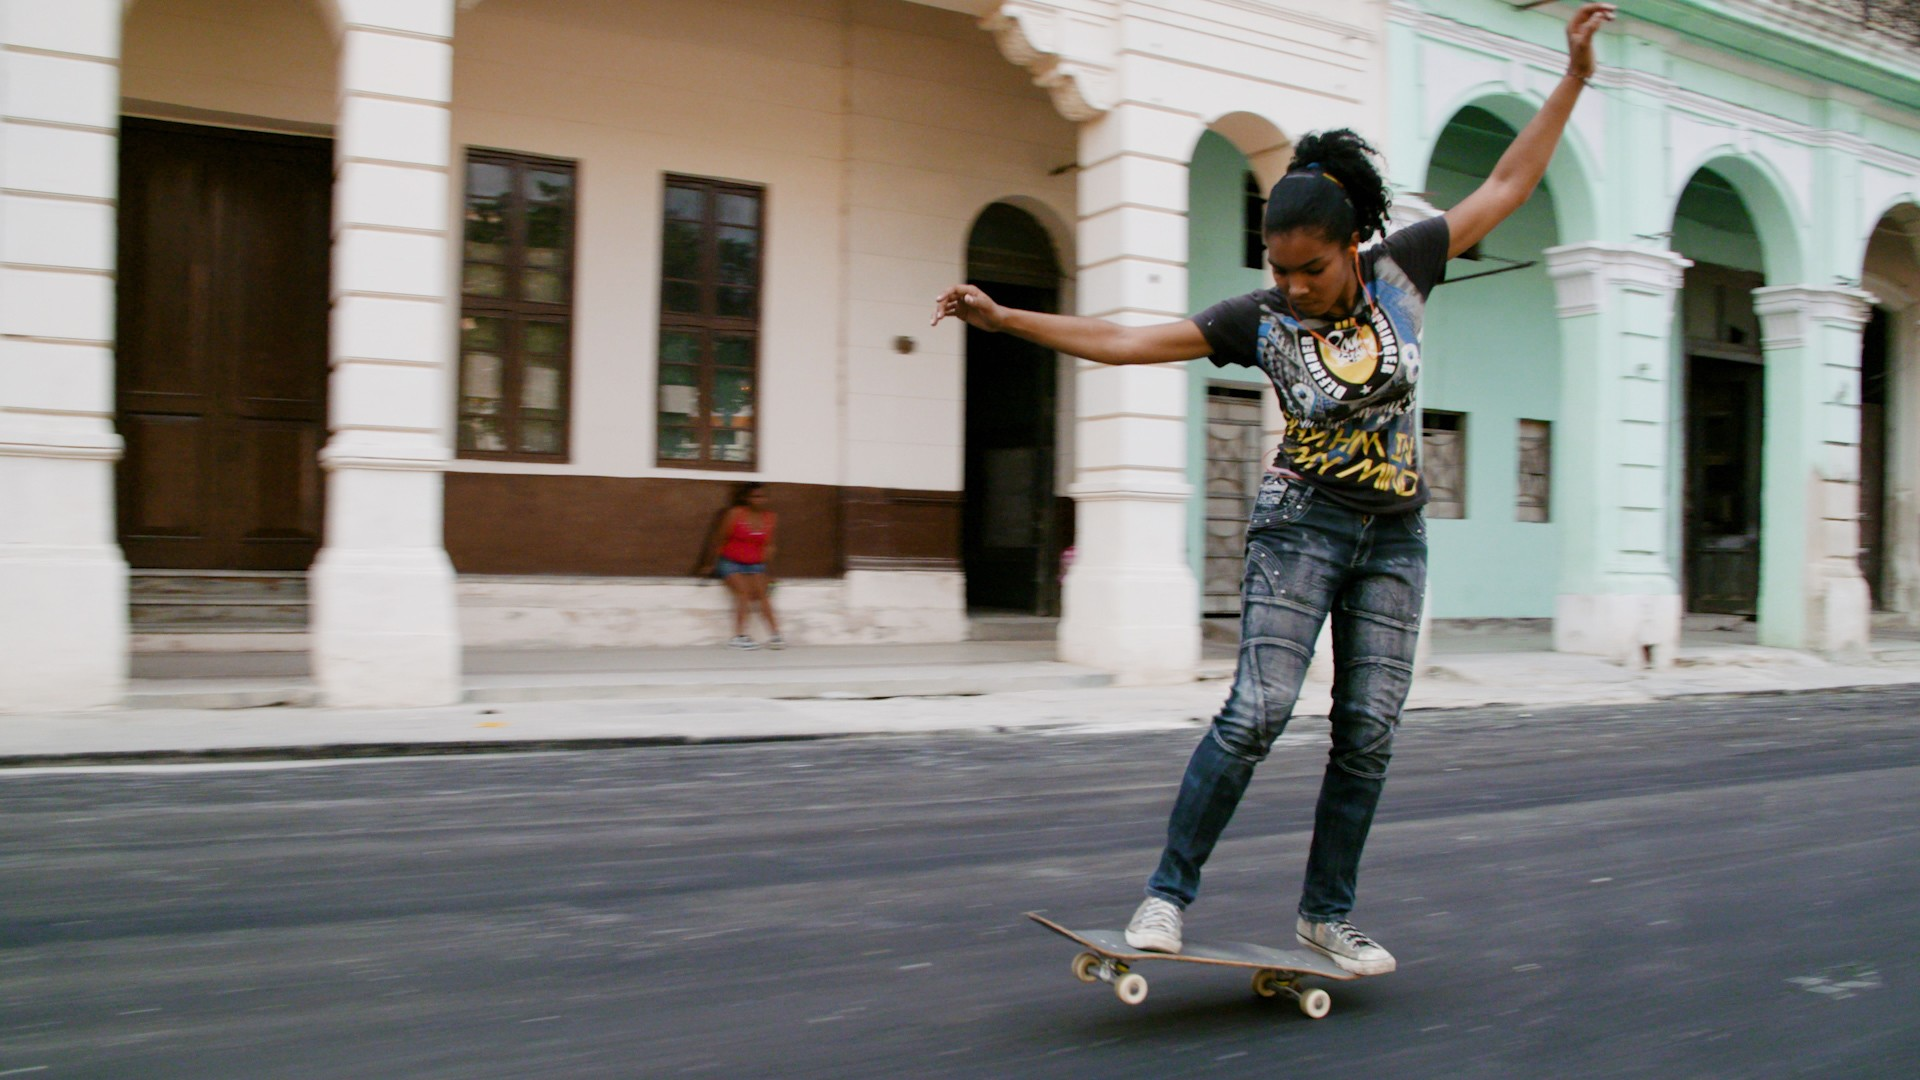 Meet One of Cuba's Female Skateboarding Pioneers